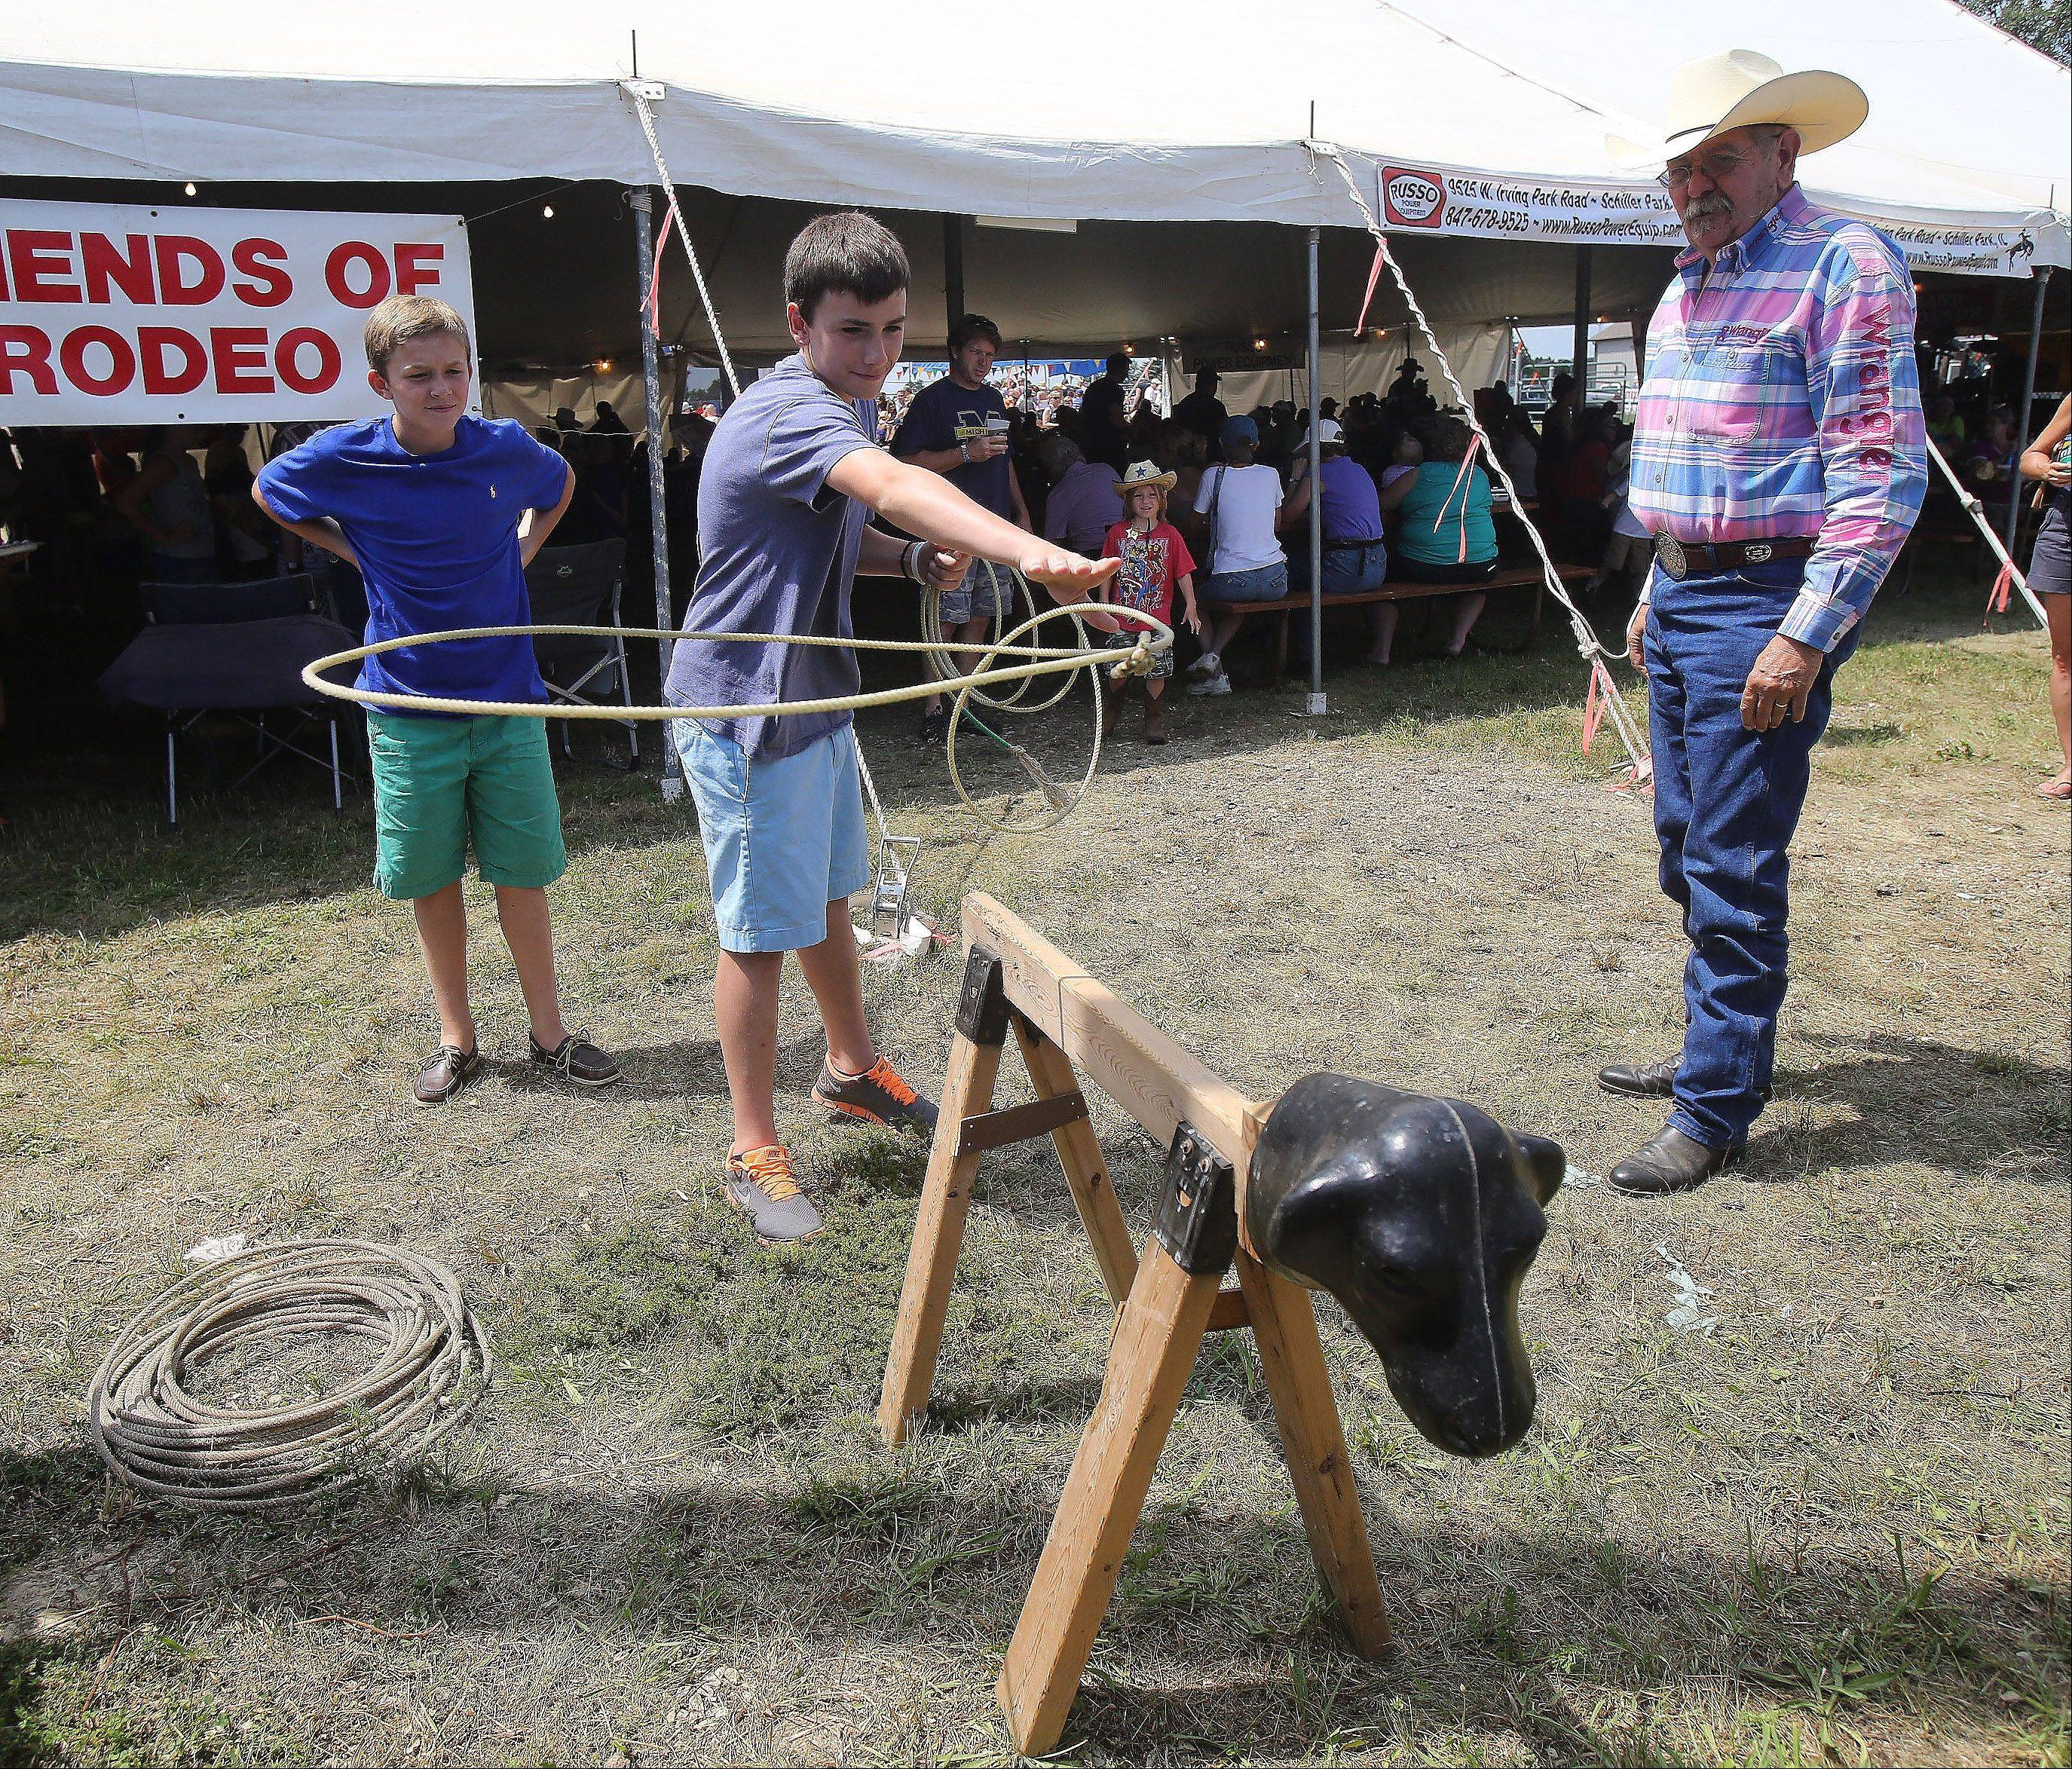 Max Lovitola, 13, of Lake Forest throws a rope around a fake calf during the 50th Annual IPRA Championship Wauconda Rodeo Sunday at Green Oaks Rodeo Grounds. The Wauconda Area Chamber of Commerce sponsored the event that featured a mechanical bull, pony rides and calf roping as well as the rodeo show.